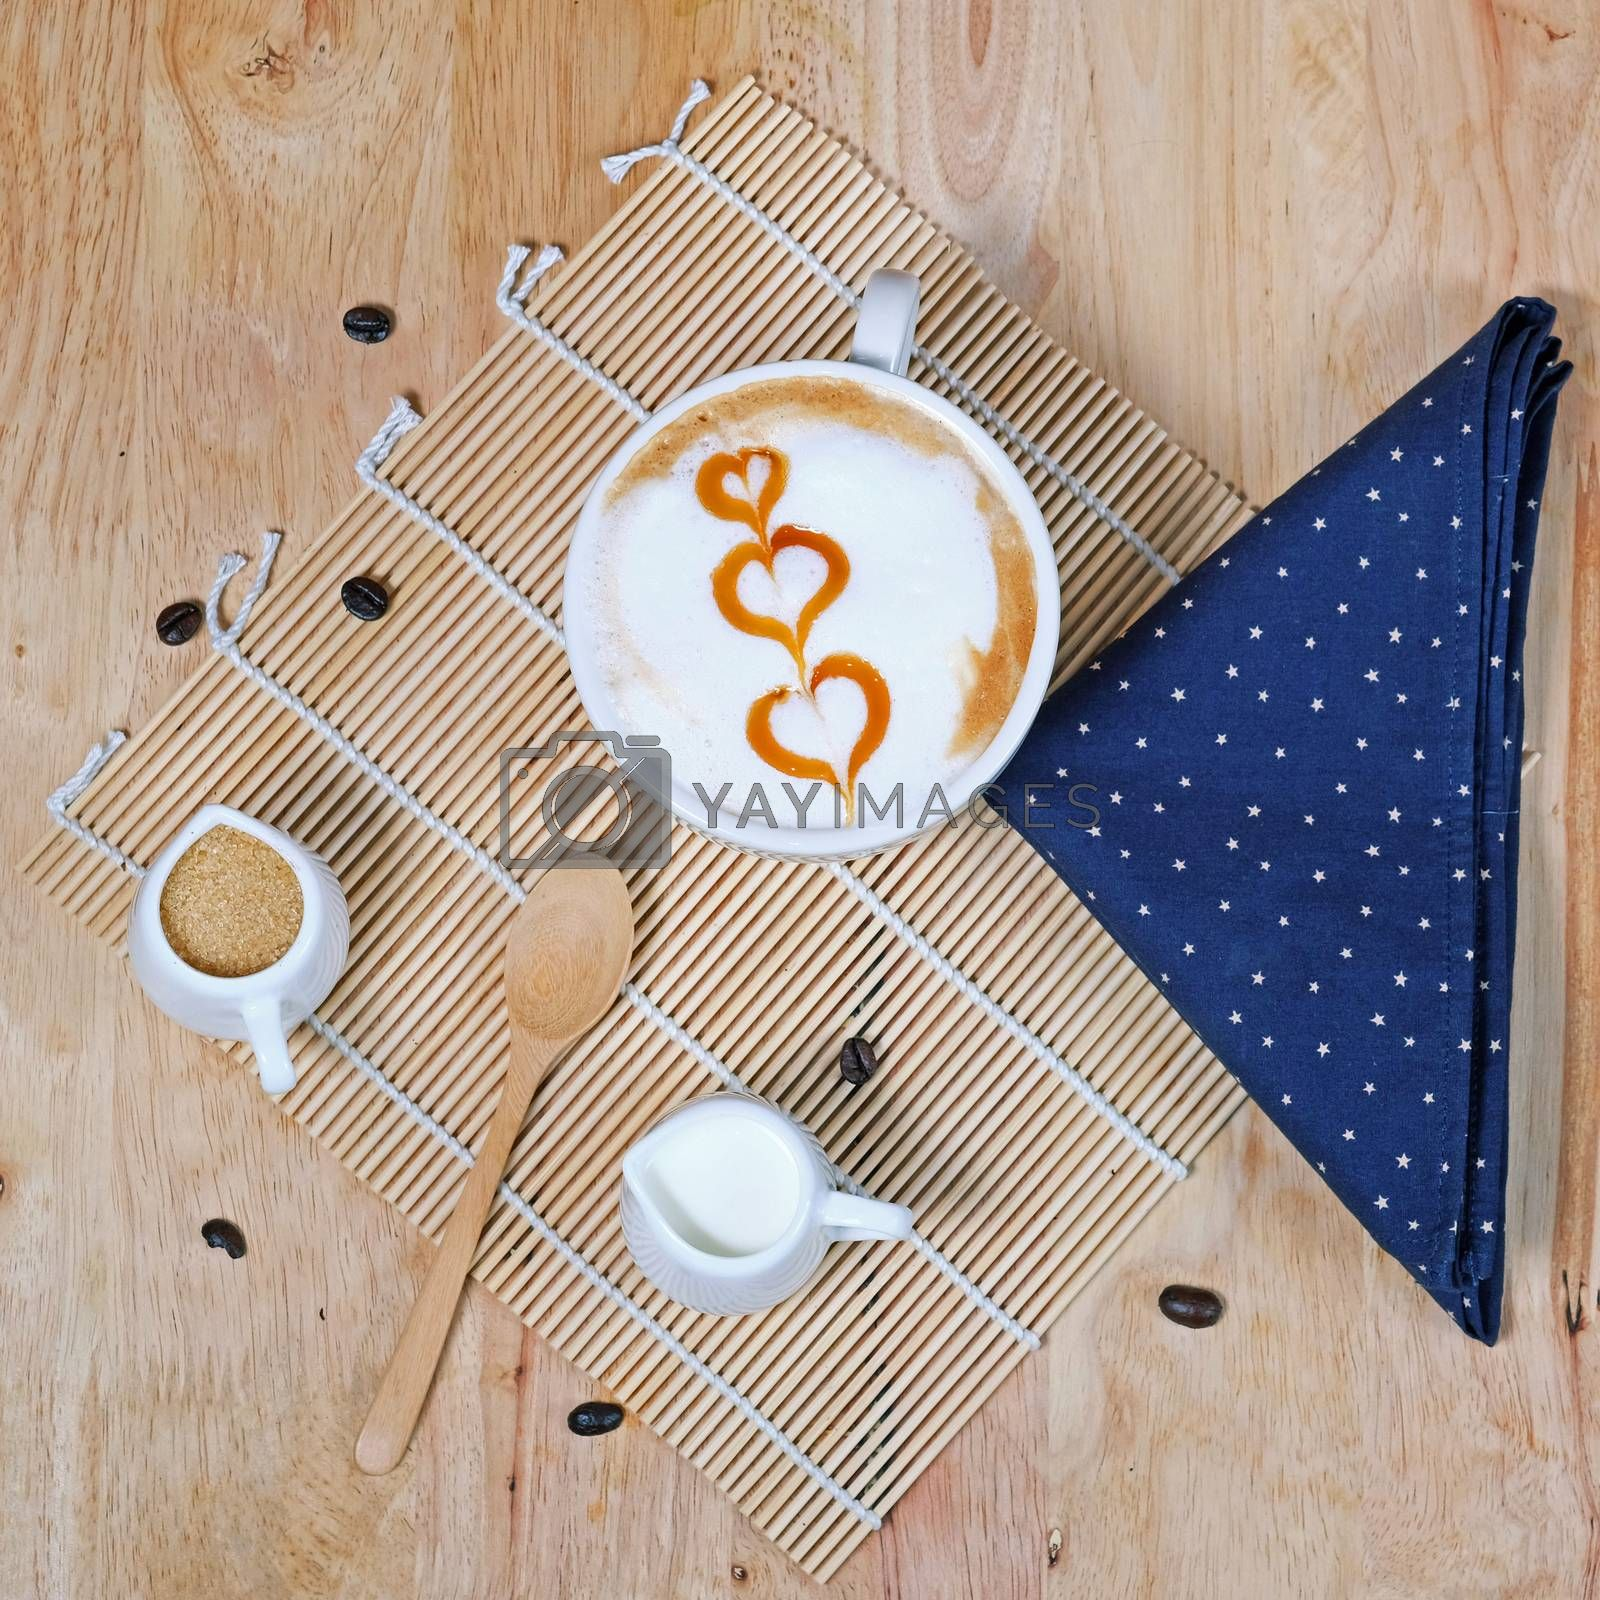 Capucino art coffee on wooden texture table by Surasak